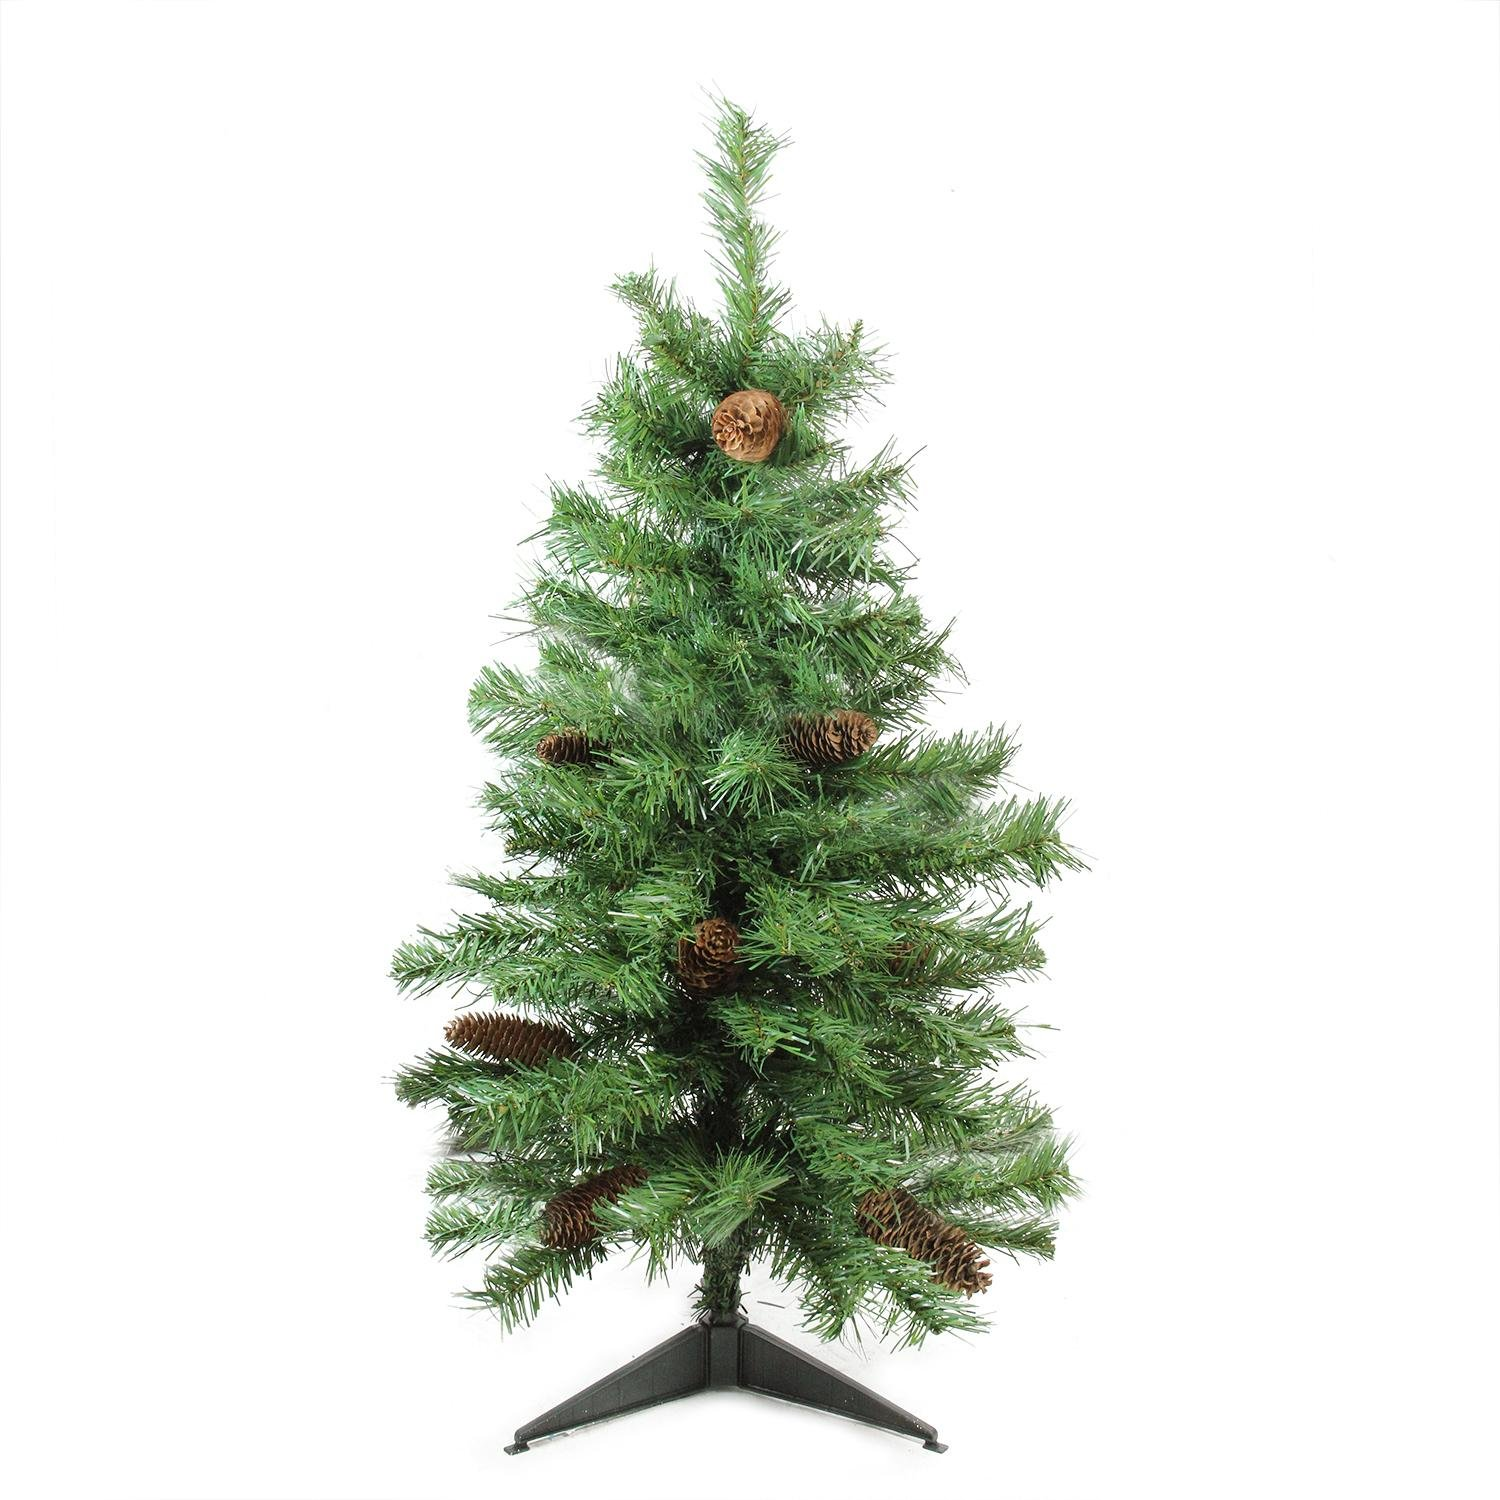 Northlight 3' x 22'' Dakota Red Pine Full Artificial Christmas Tree with Pine Cones - Unlit